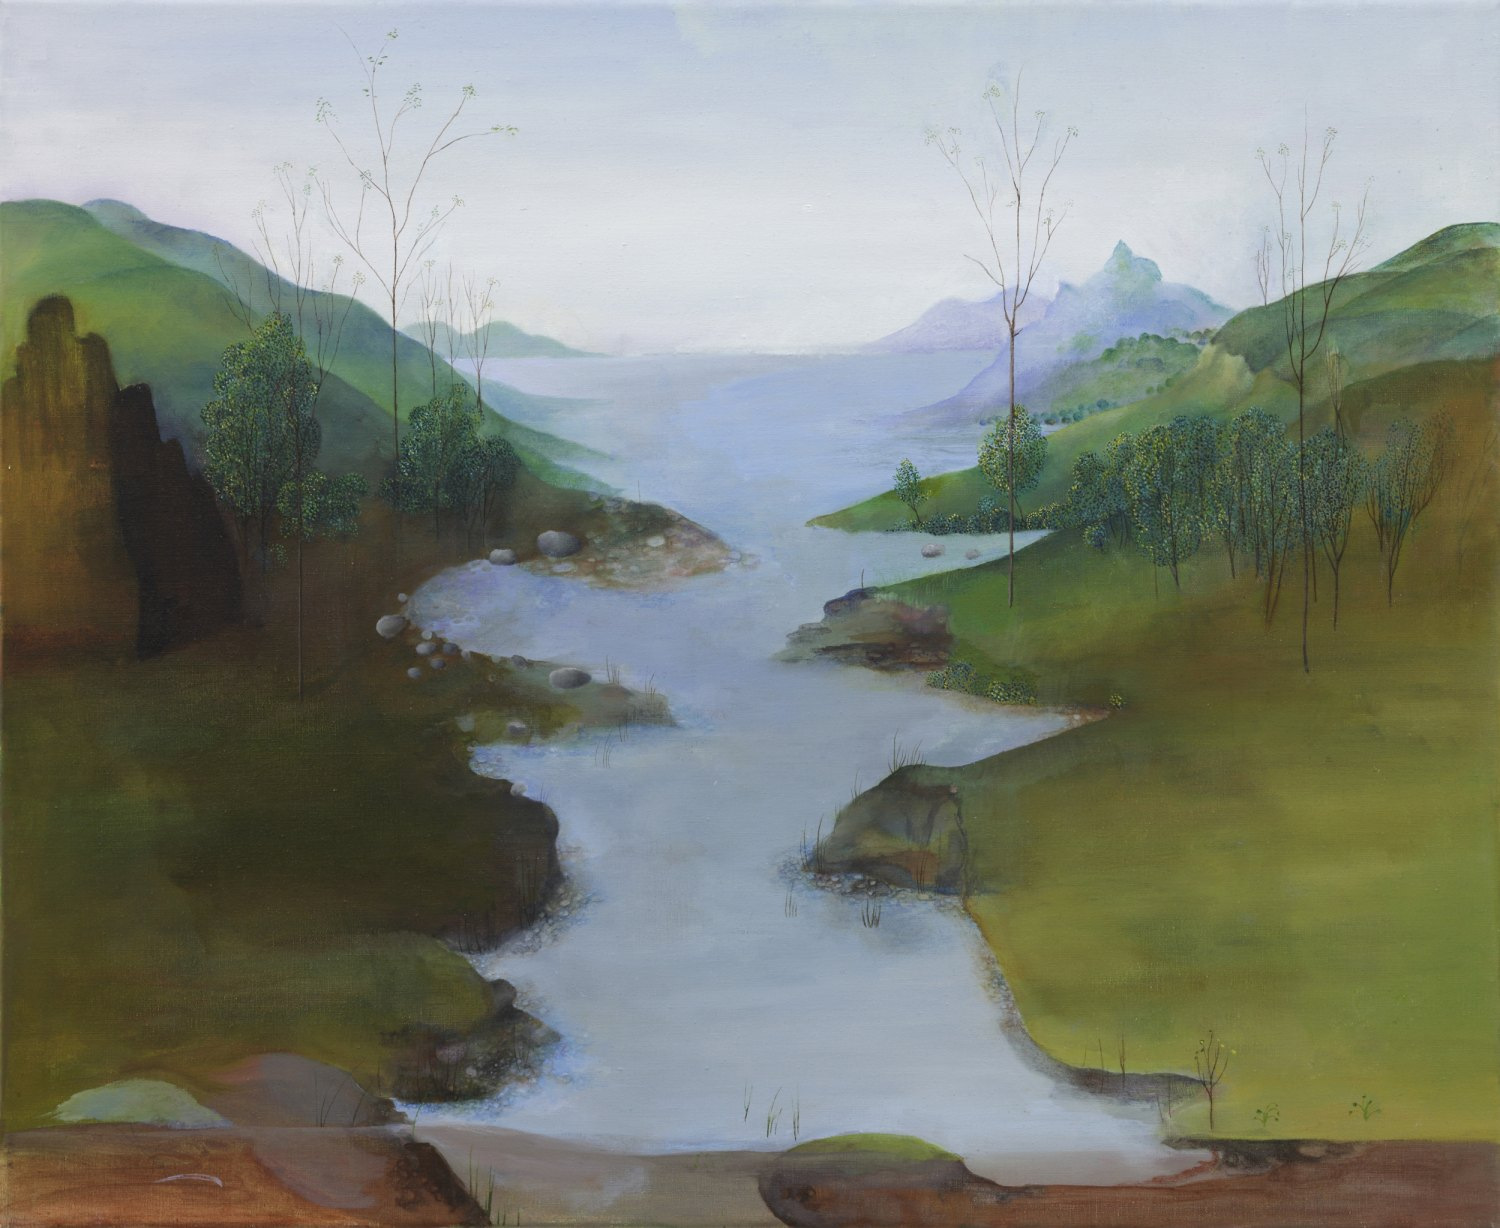 Katharina Wulff  Die Scheide / the sheath, 2008    Oil on canvas,  90.5 × 65.5 cm